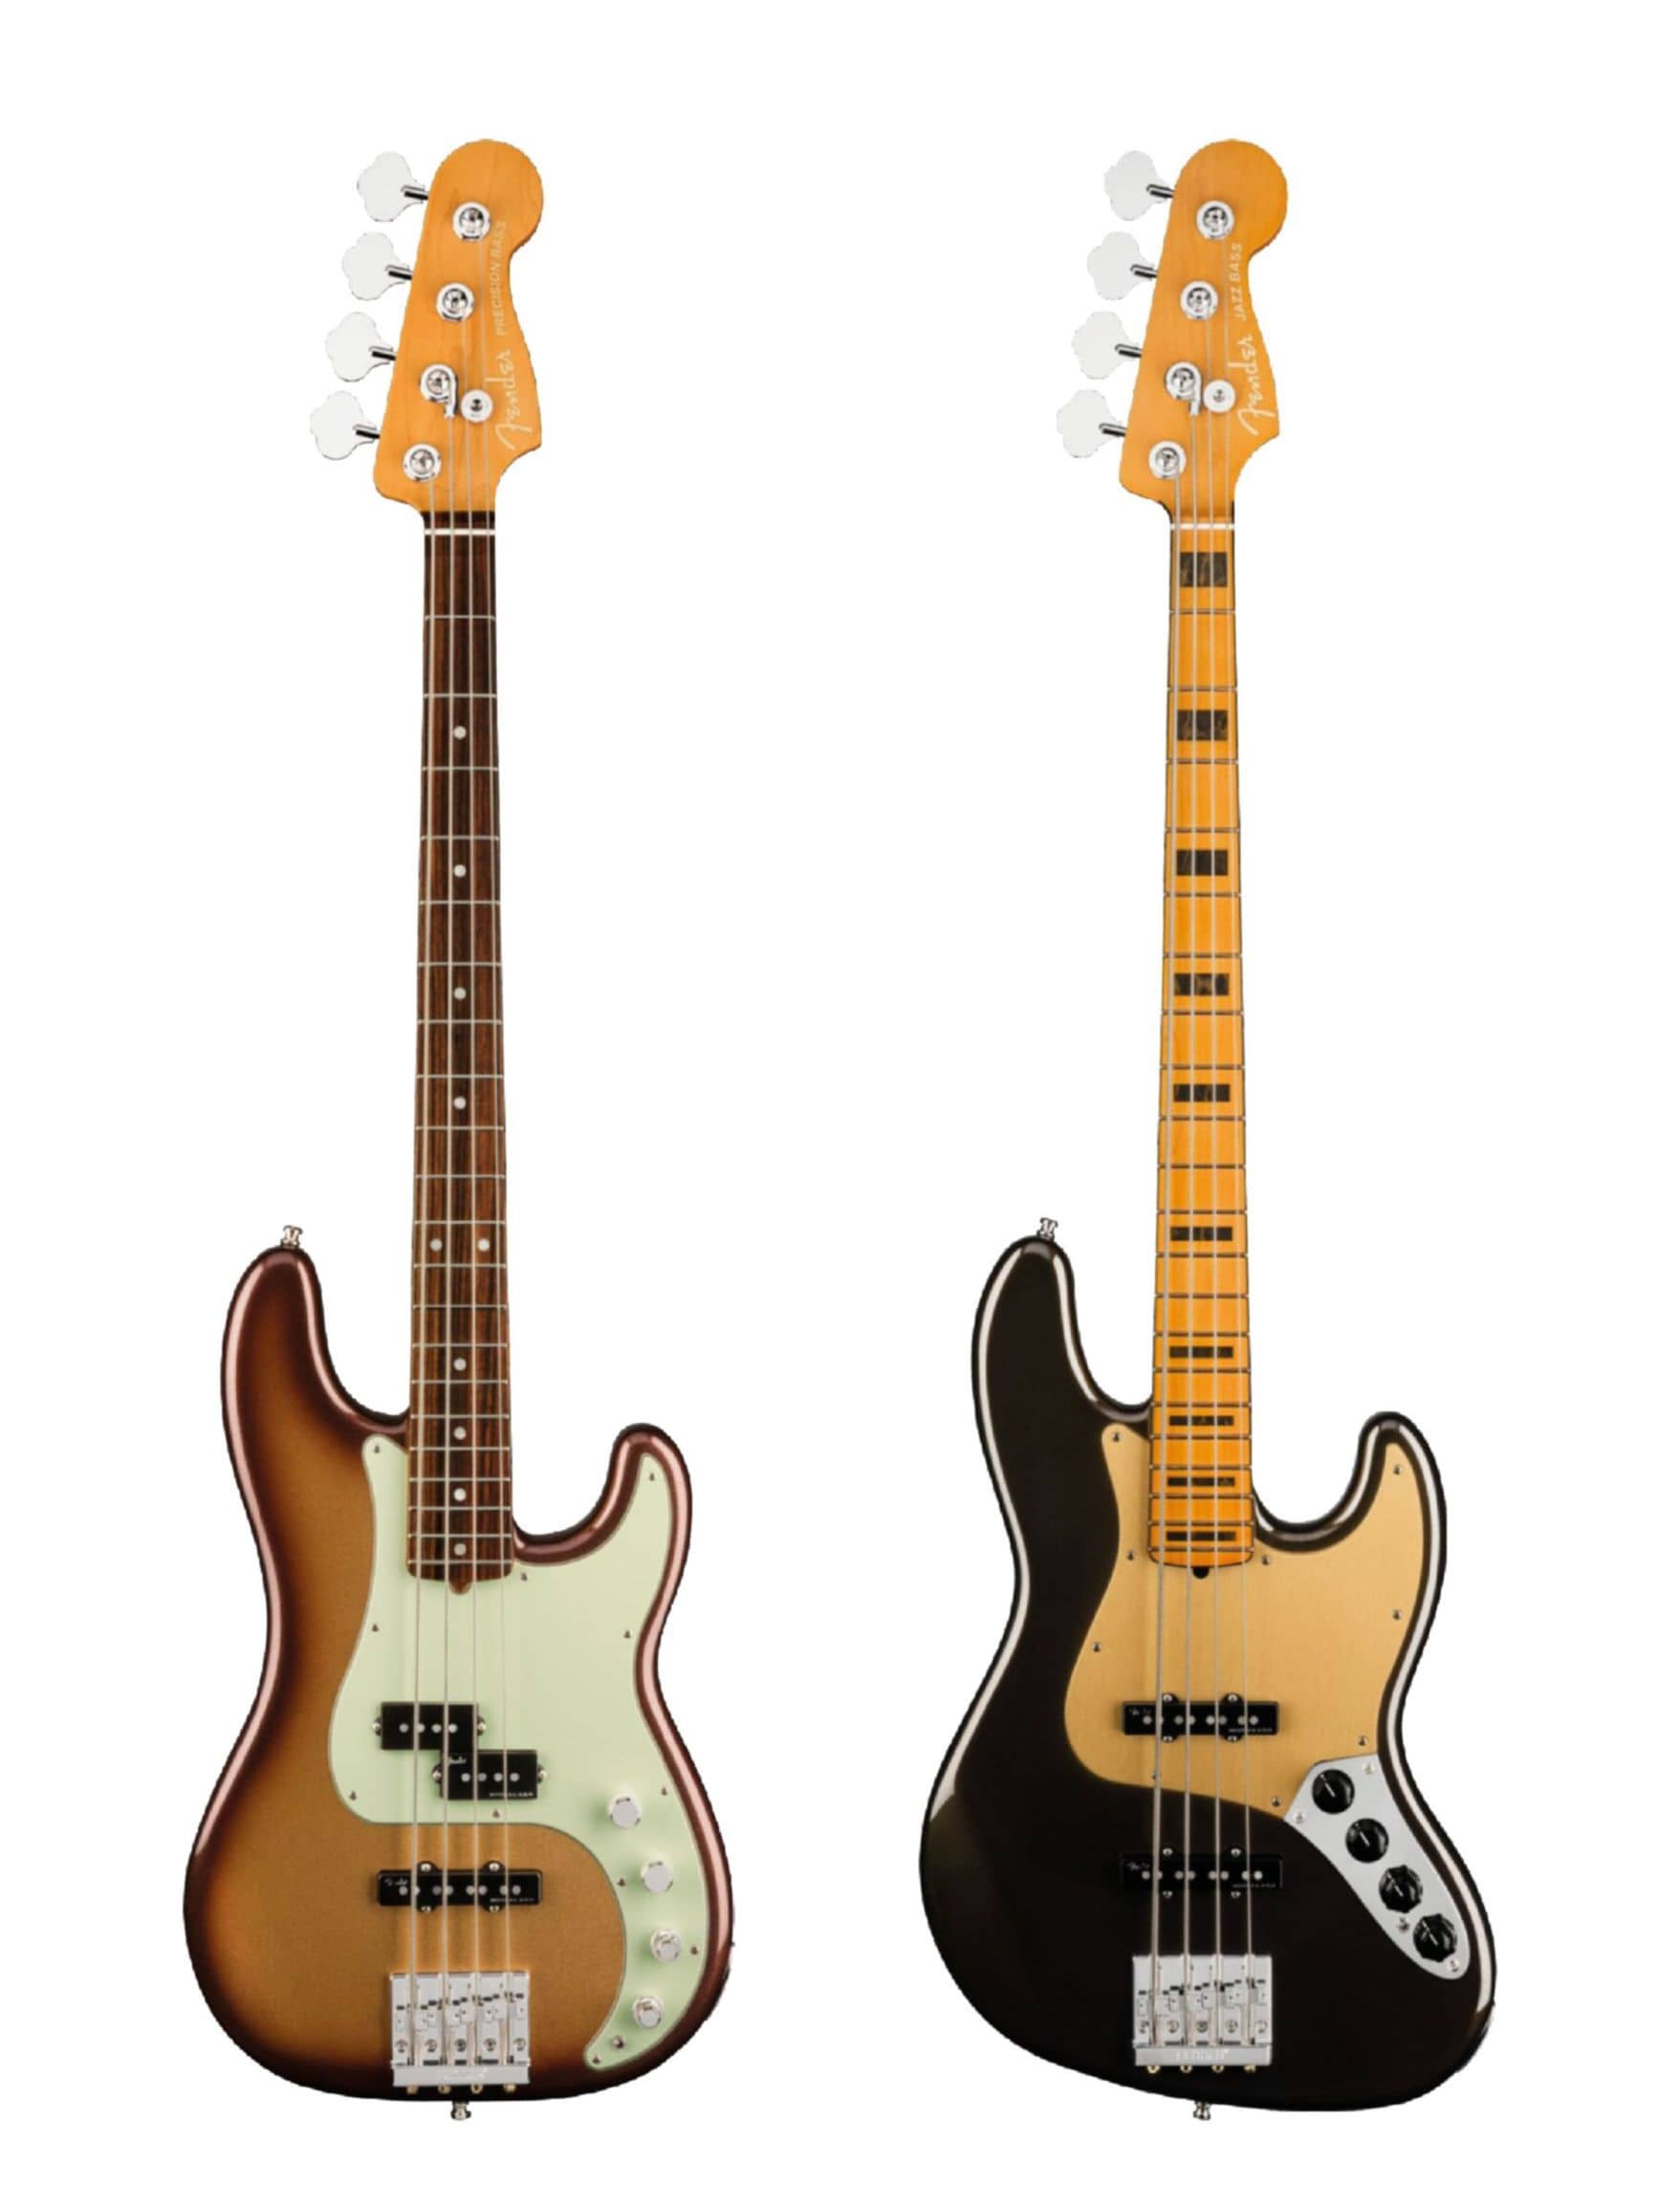 FENDER American Ultra Jazz and Precision